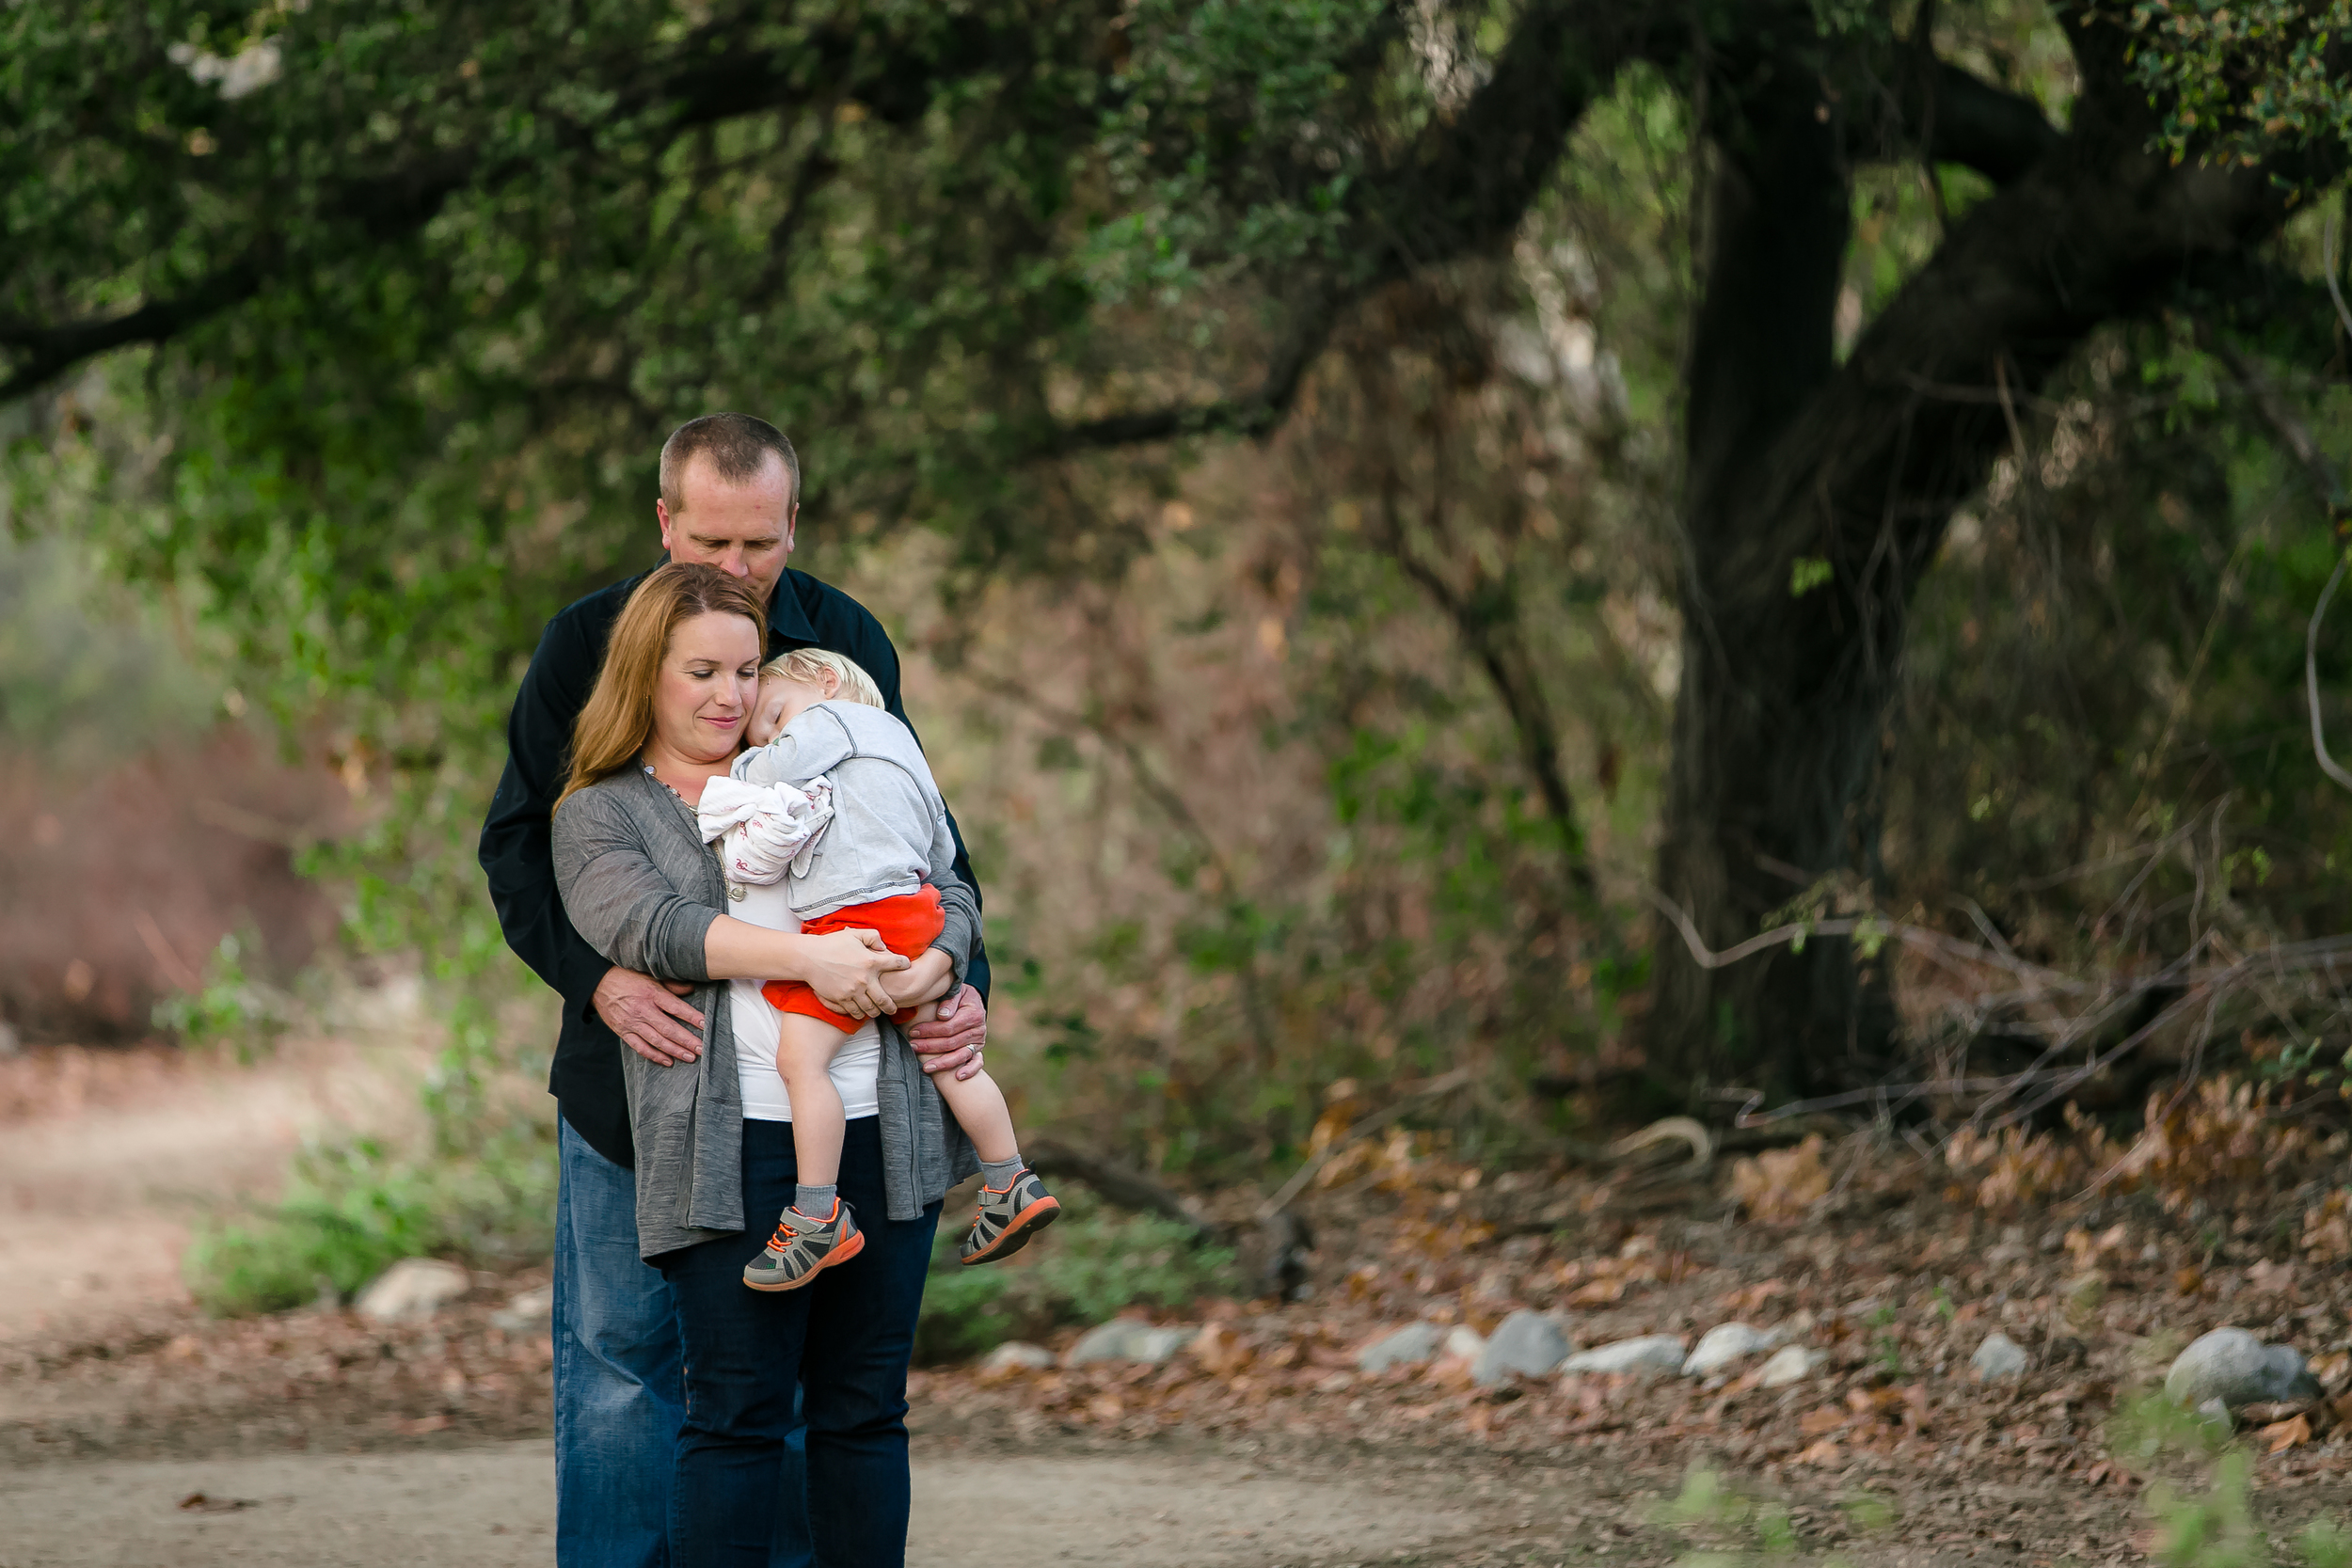 Eaton Canyon Family Session, Pasadena Family Photos, Los Angeles Outdoor Portraits, South Pasadena Family, Sierra Madre Portrait Photography, Beautiful Family, Best of LA, Los Angeles Children's Photographer, Little Boys, Age 2, Mommy and Me, Daddy and Me, Jack